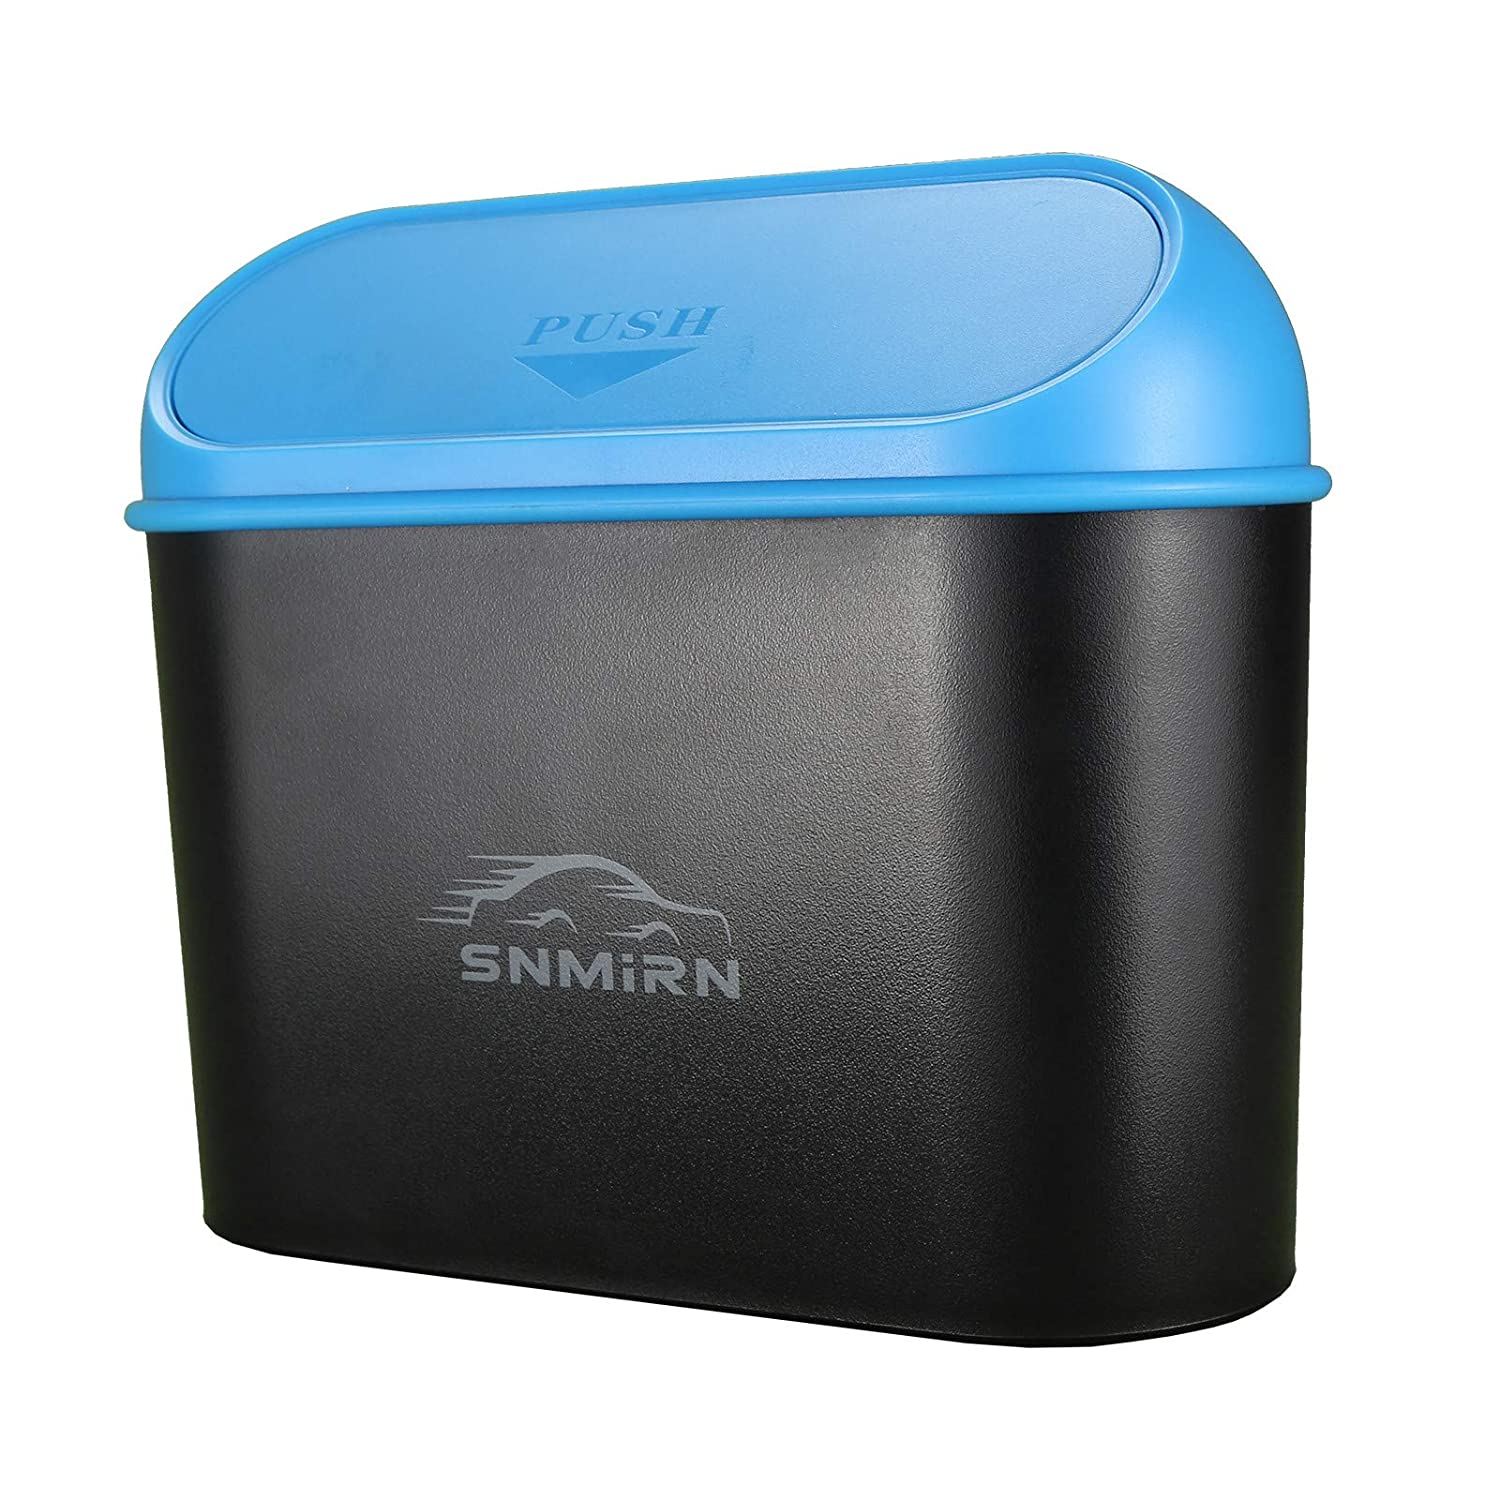 Car Trash Can,Mini Car Garbage Can,Portable Hanging Wastebasket Trash Can with Lid, Automotive Garbage Can Bin Trash Container for Cars, Home, Office (Blue)